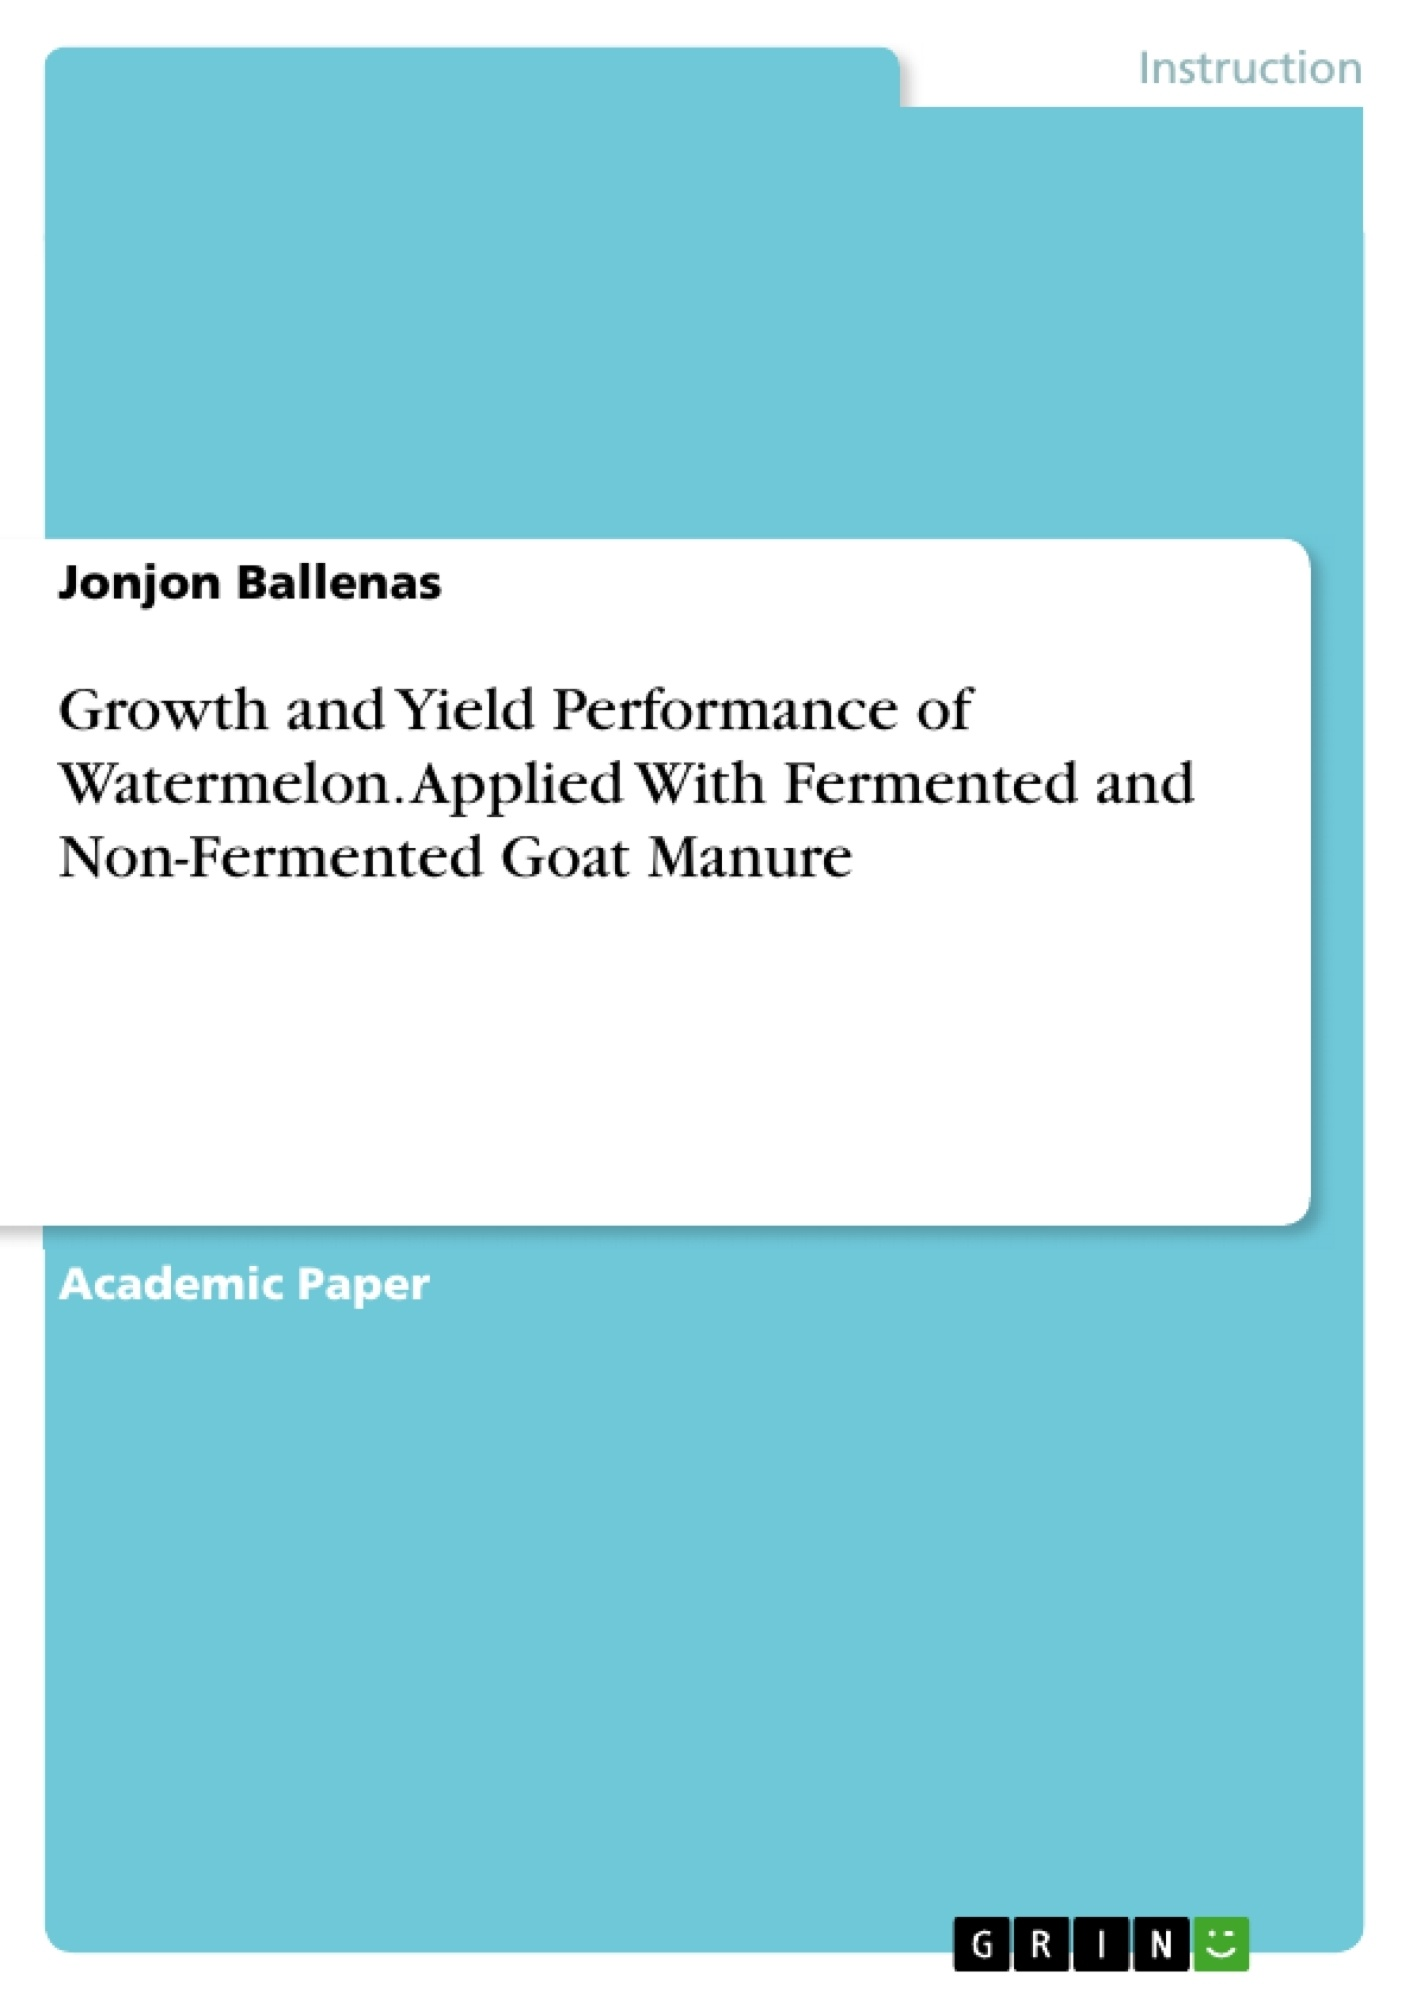 Title: Growth and Yield Performance of Watermelon. Applied With Fermented and Non-Fermented Goat Manure